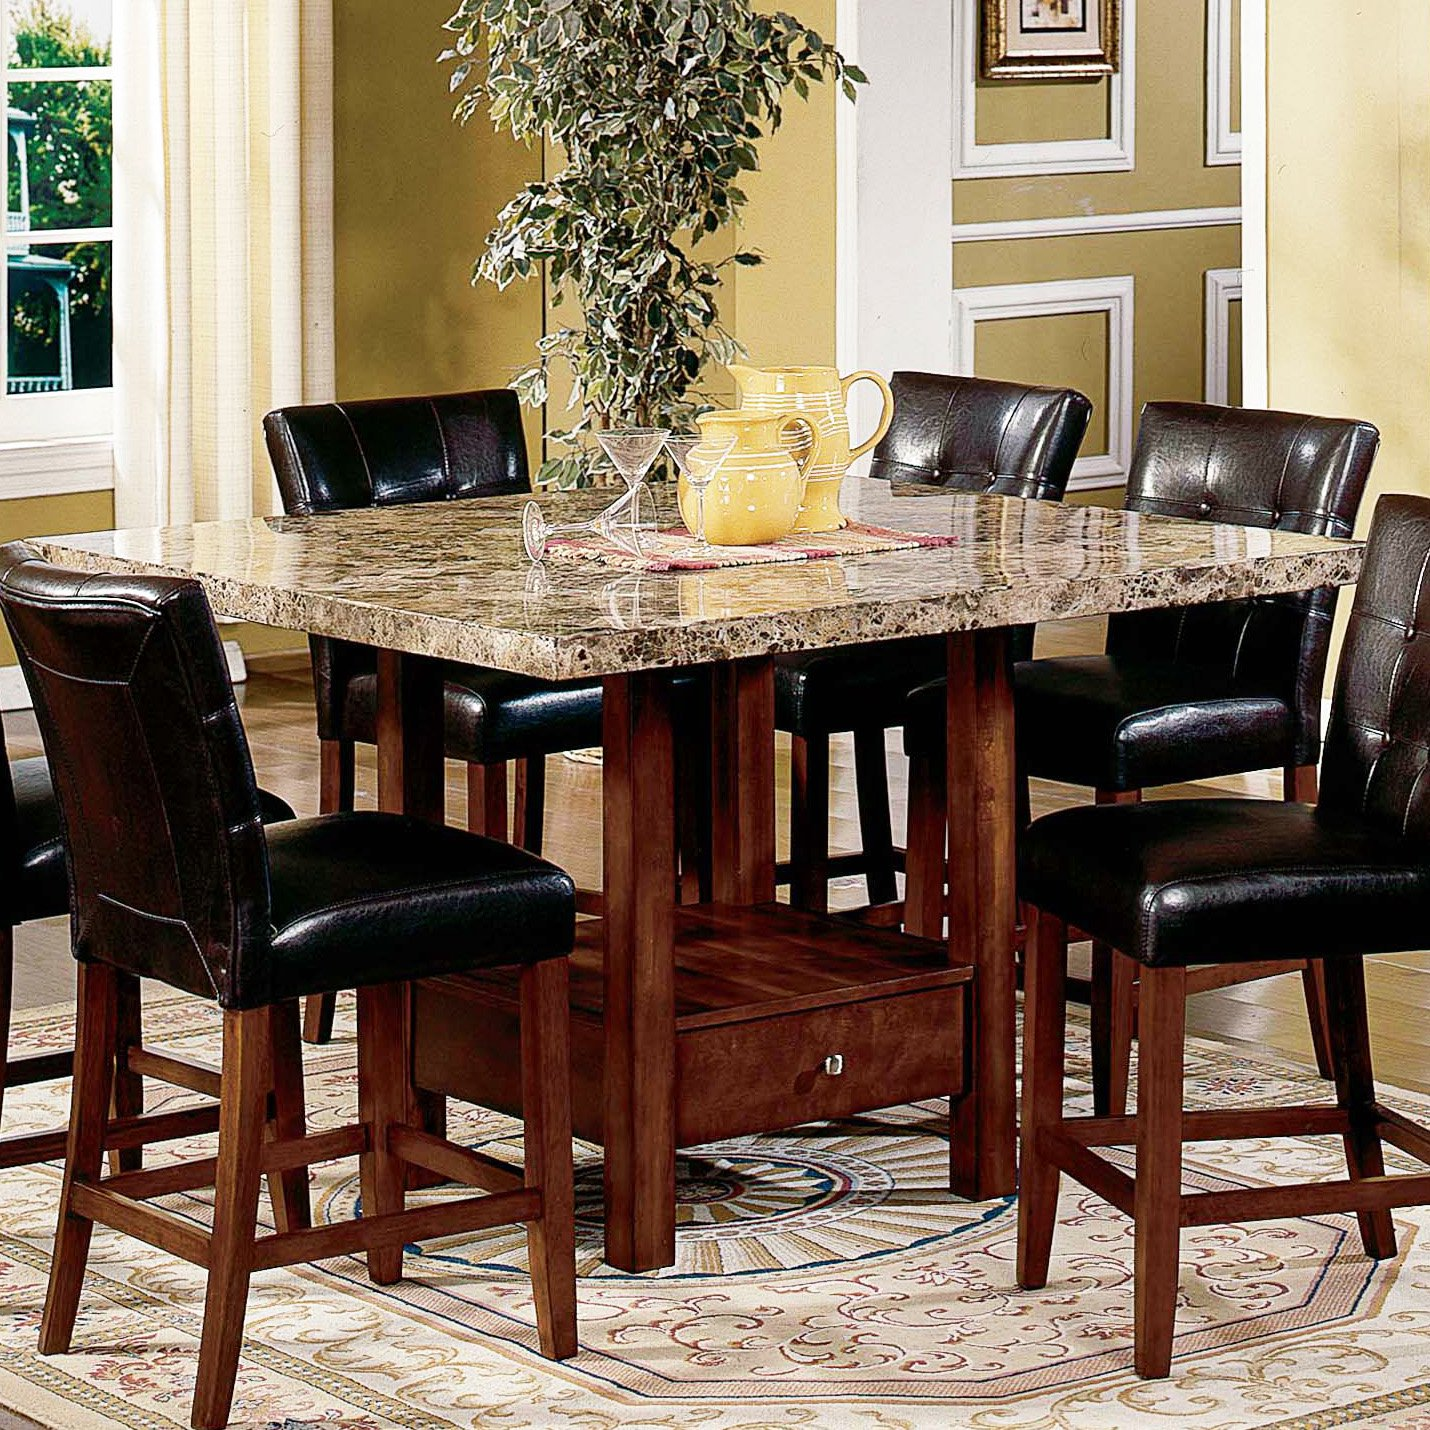 Charmant High Top Kitchen Table Sets Homesfeed. SaveEnlarge · Dining Room White  Marble ...